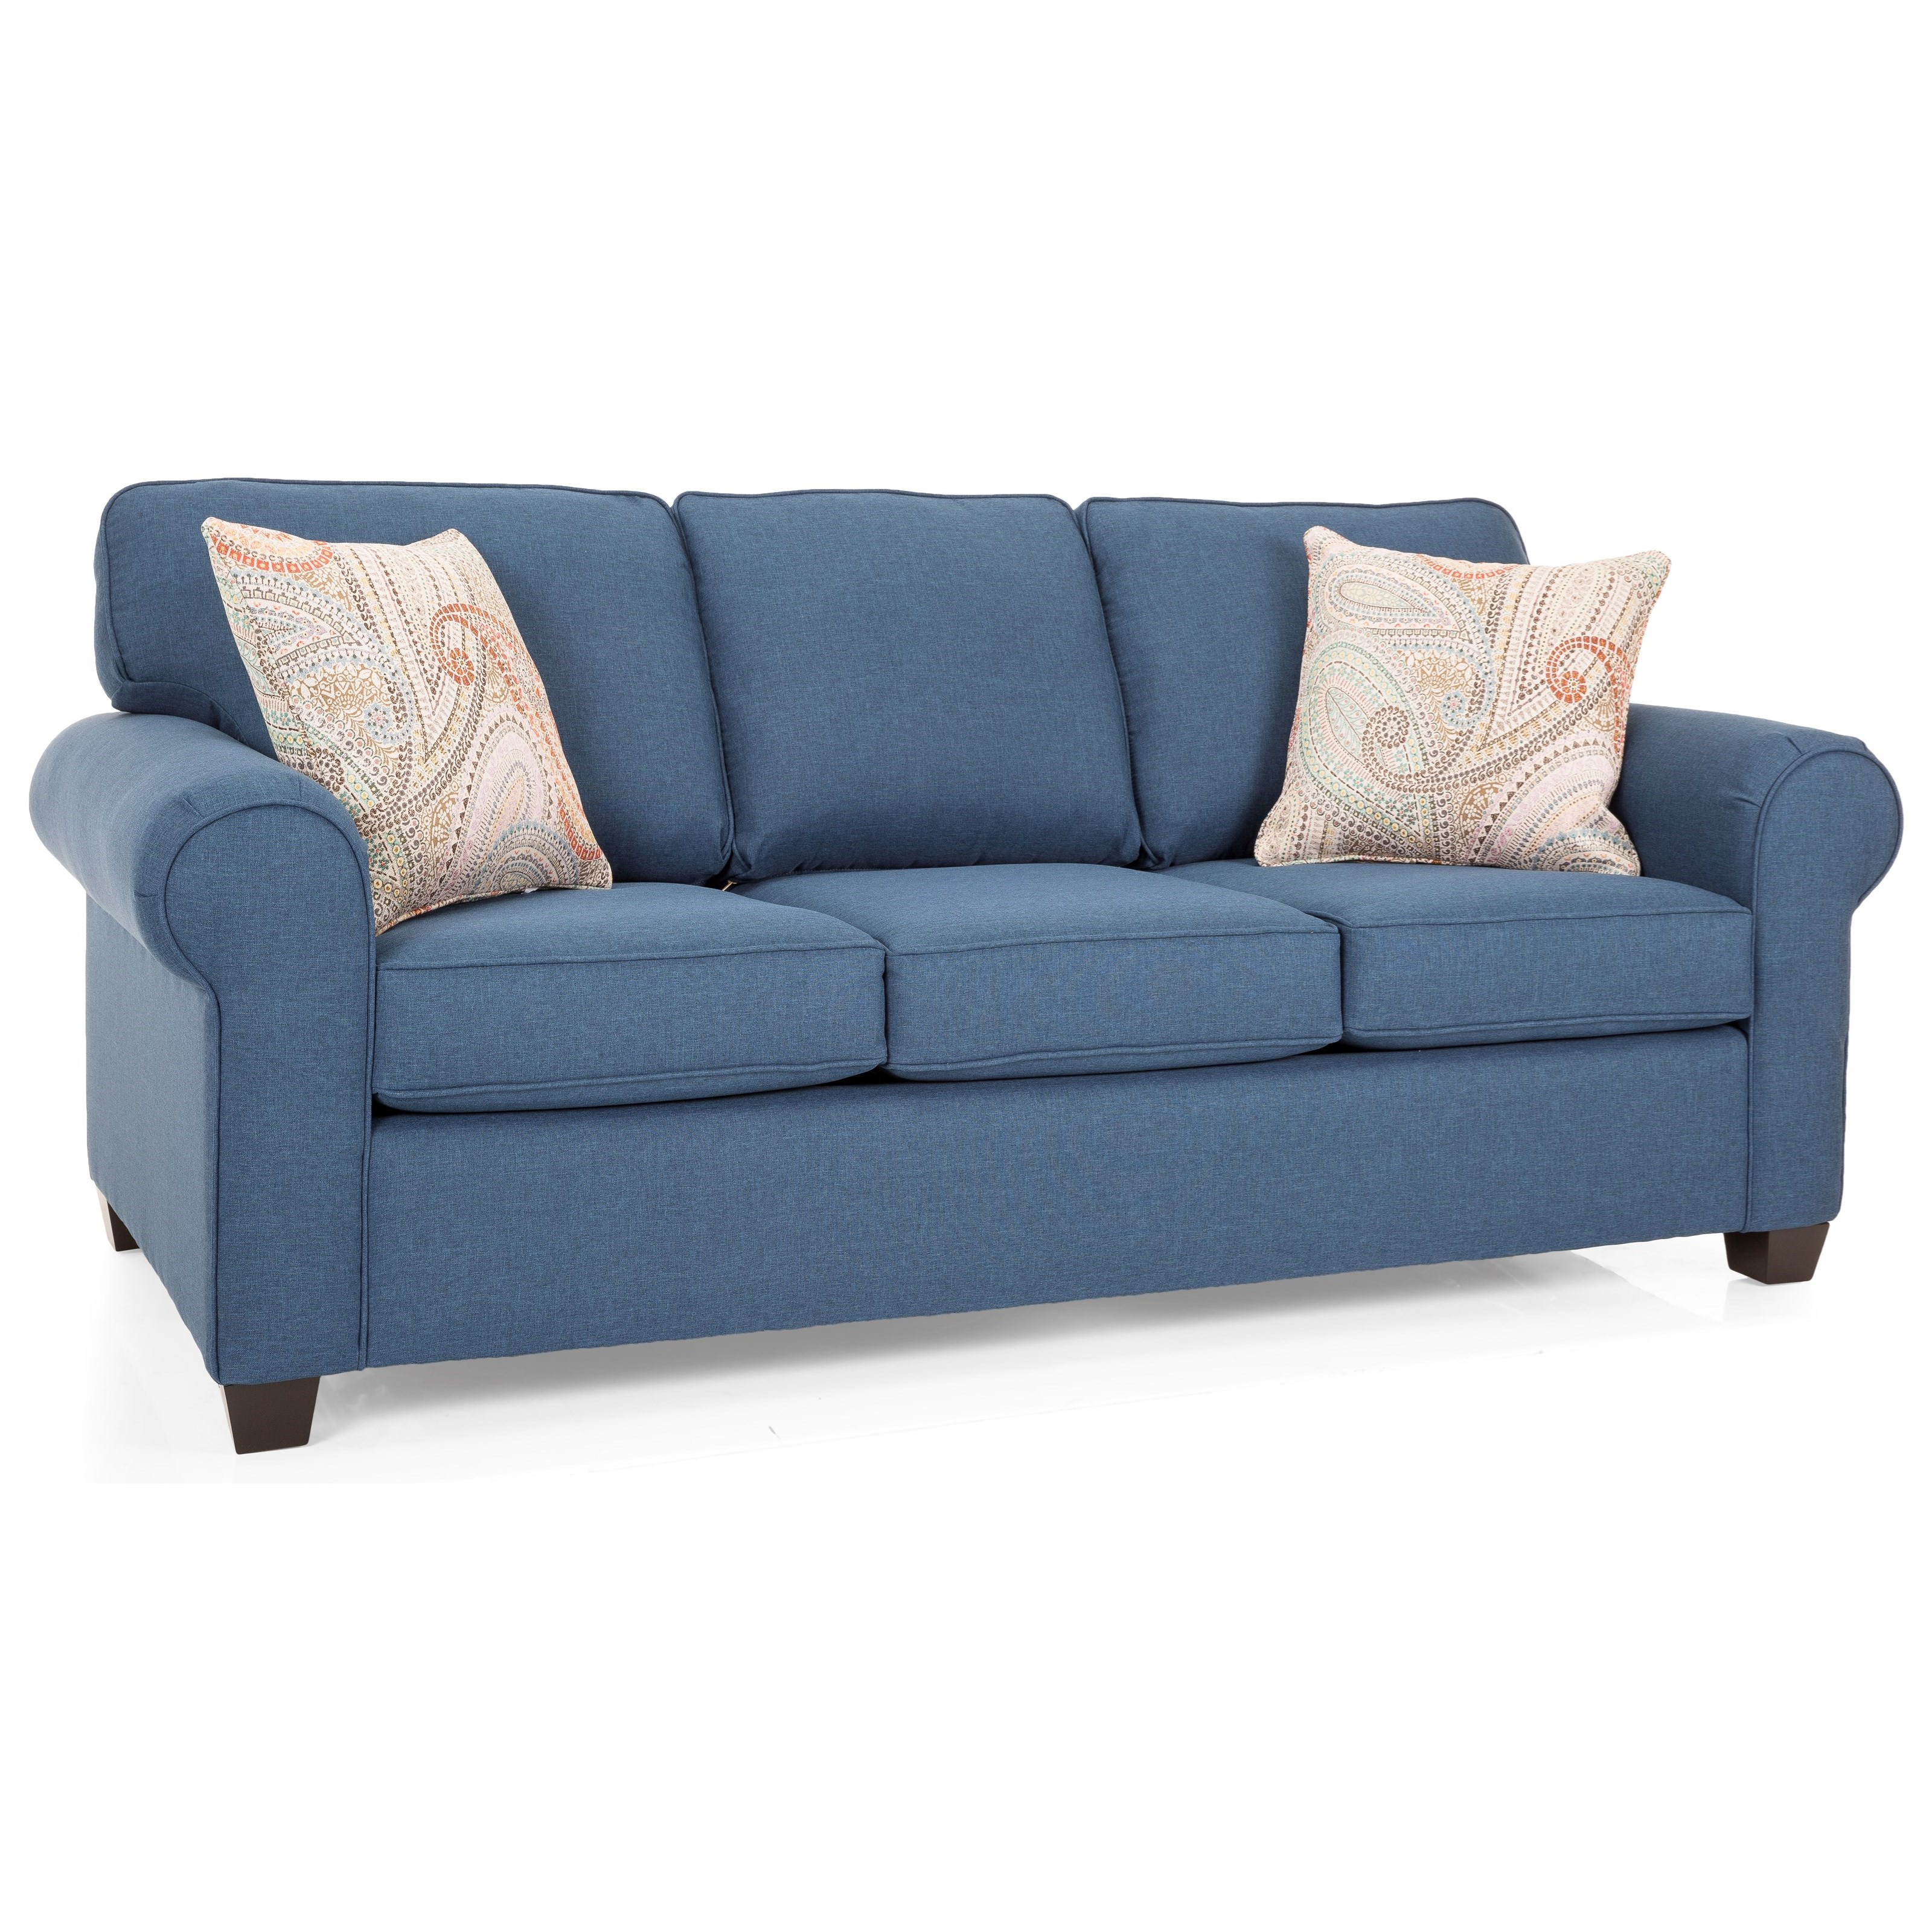 Porter Queen Bed Sofa by Taelor Designs at Bennett's Furniture and Mattresses